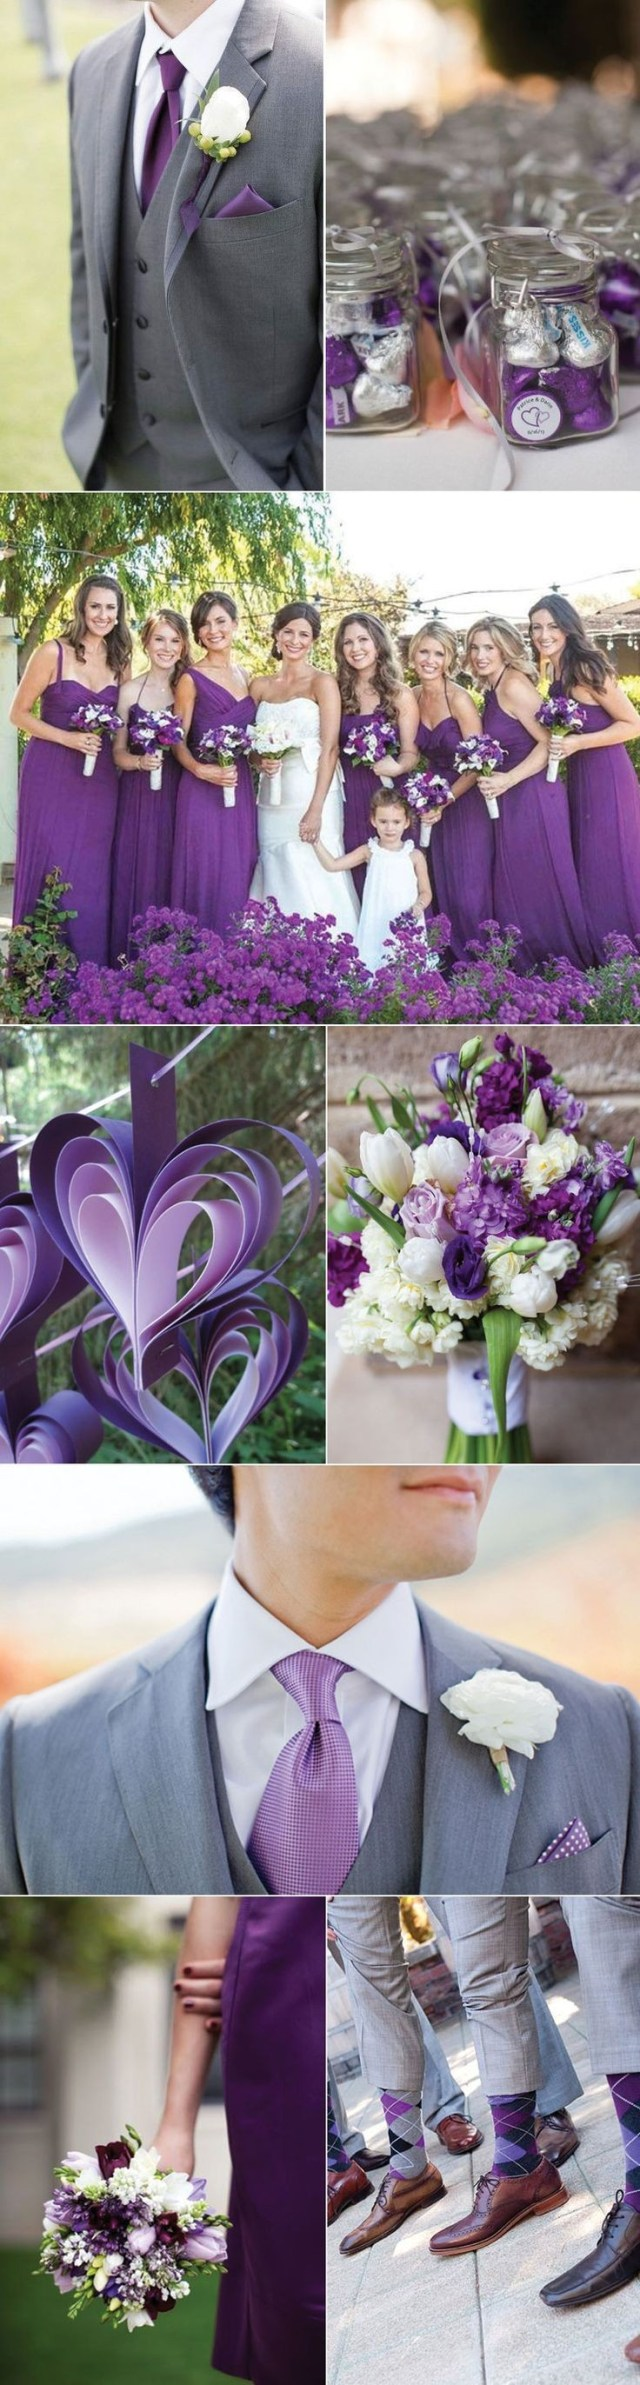 Purple And Silver Wedding Decorations Best 25 Purple Silver Wedding Ideas On Pinterest Purple And With